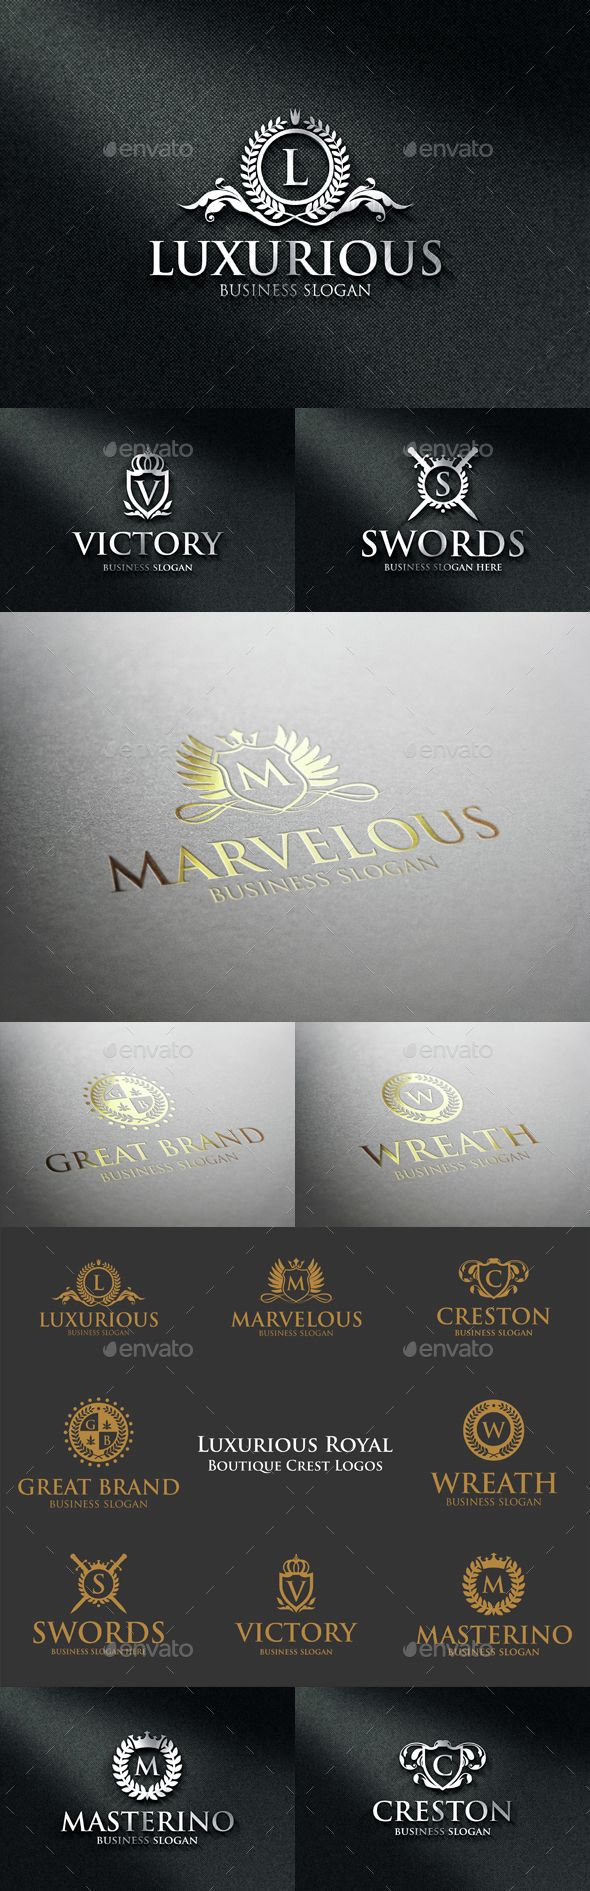 Luxurious Royal Boutique Crest Logos Template Vector EPS, AI. Download here: http://graphicriver.net/item/luxurious-royal-boutique-crest-logos/14564729?ref=ksioks